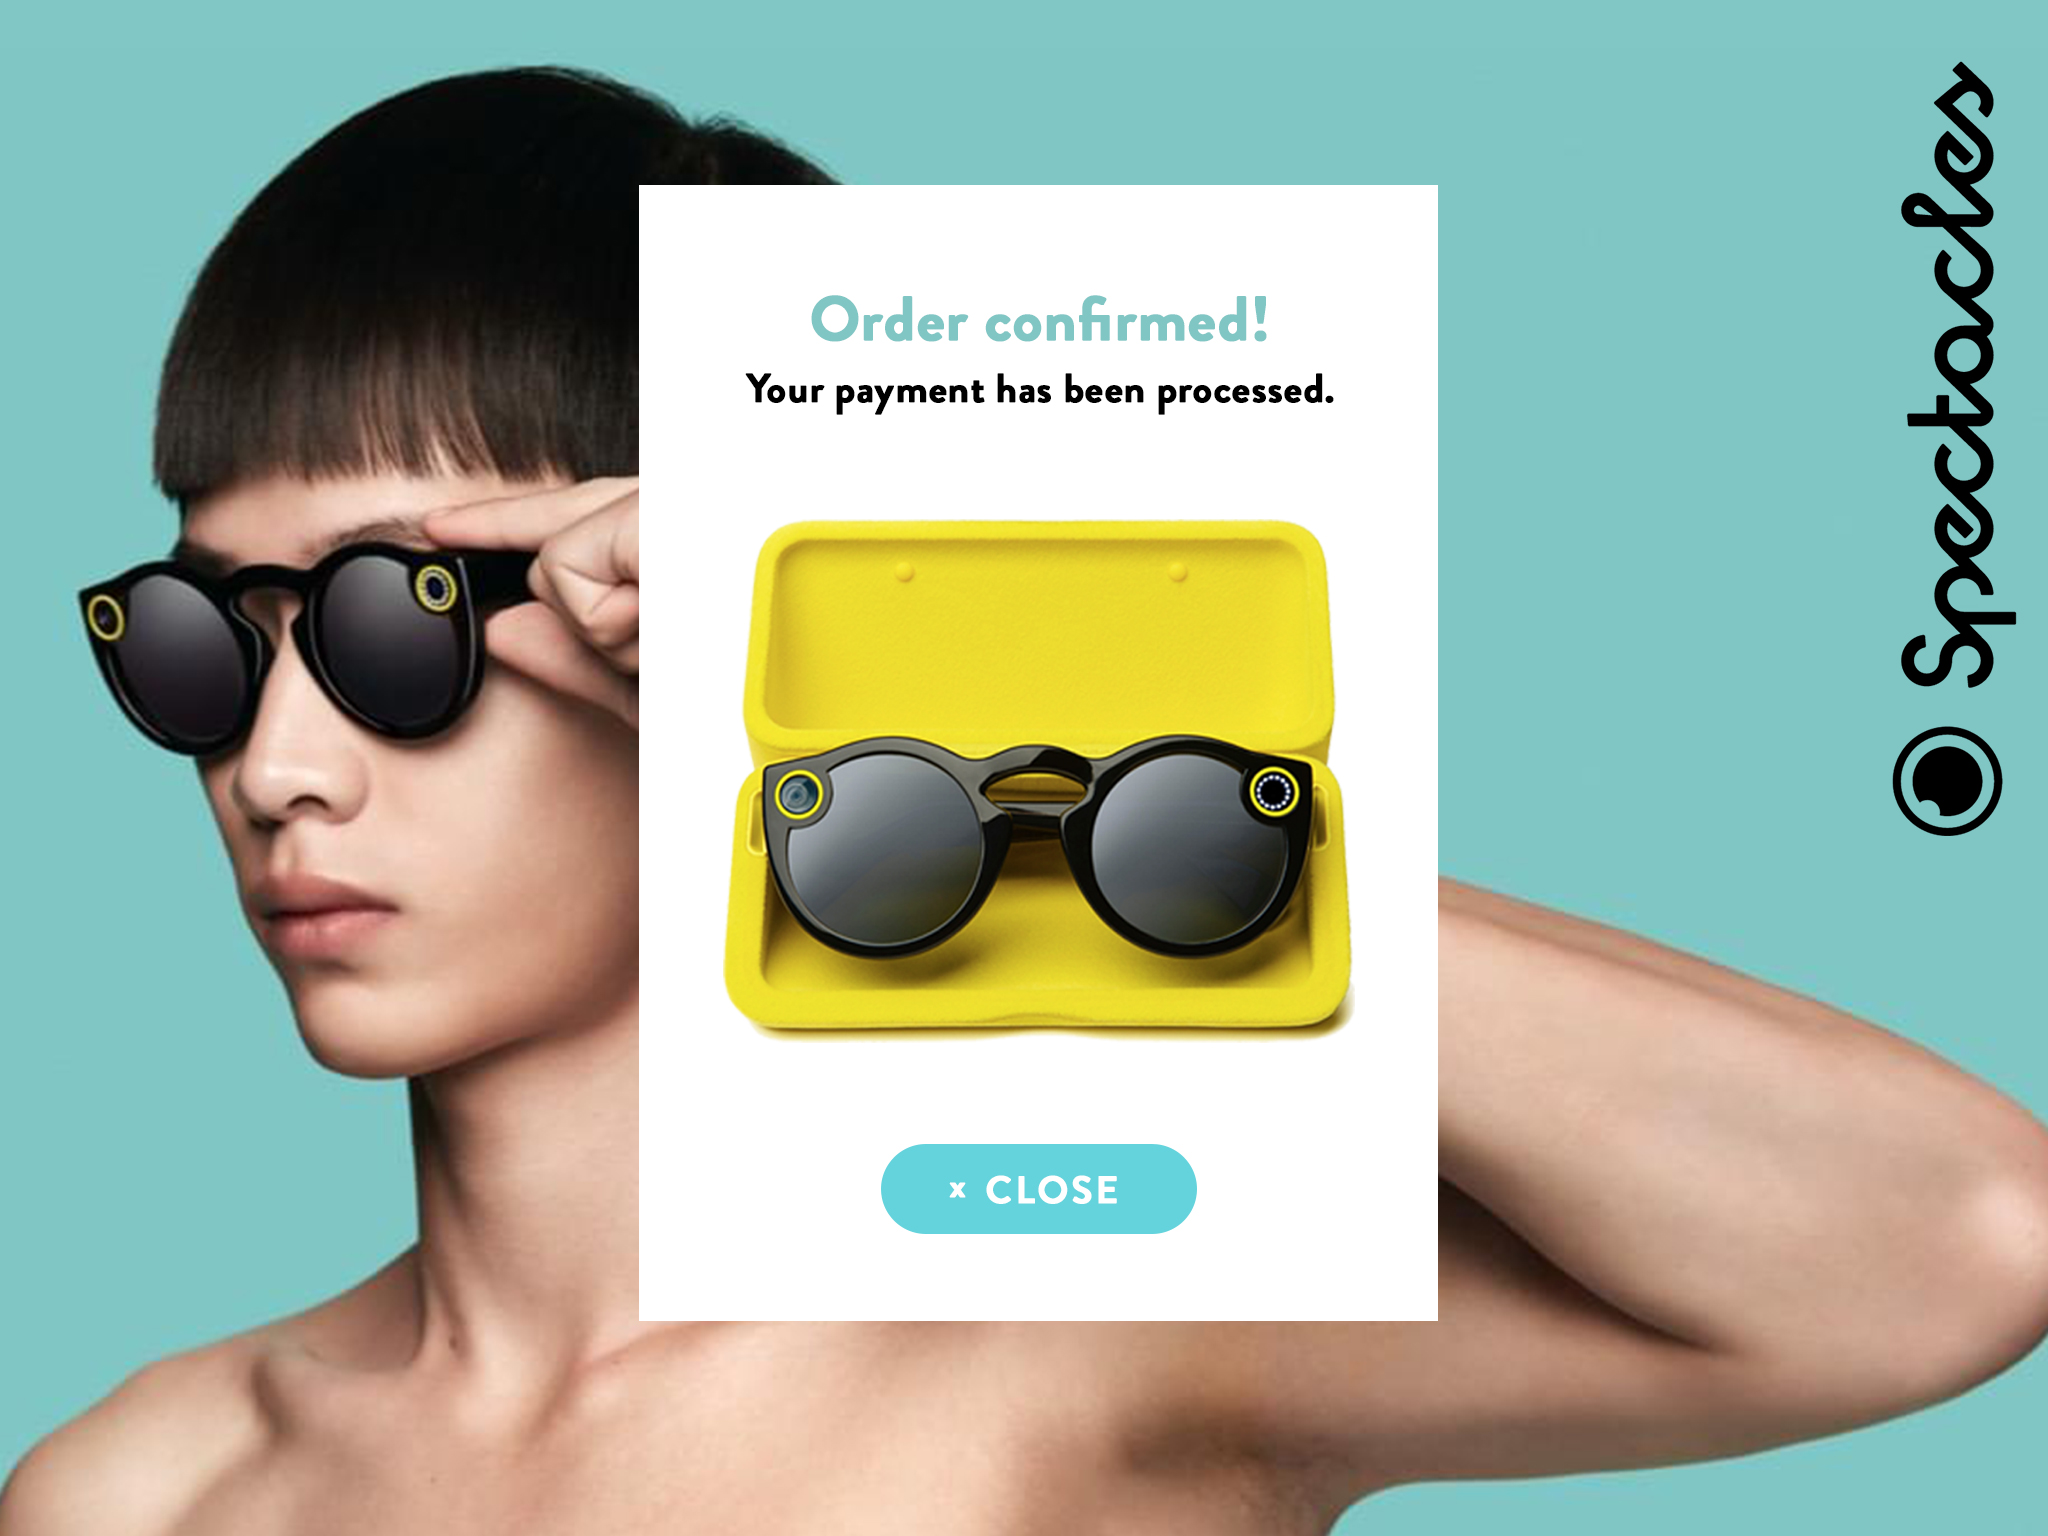 Spectacles Confirmation Page